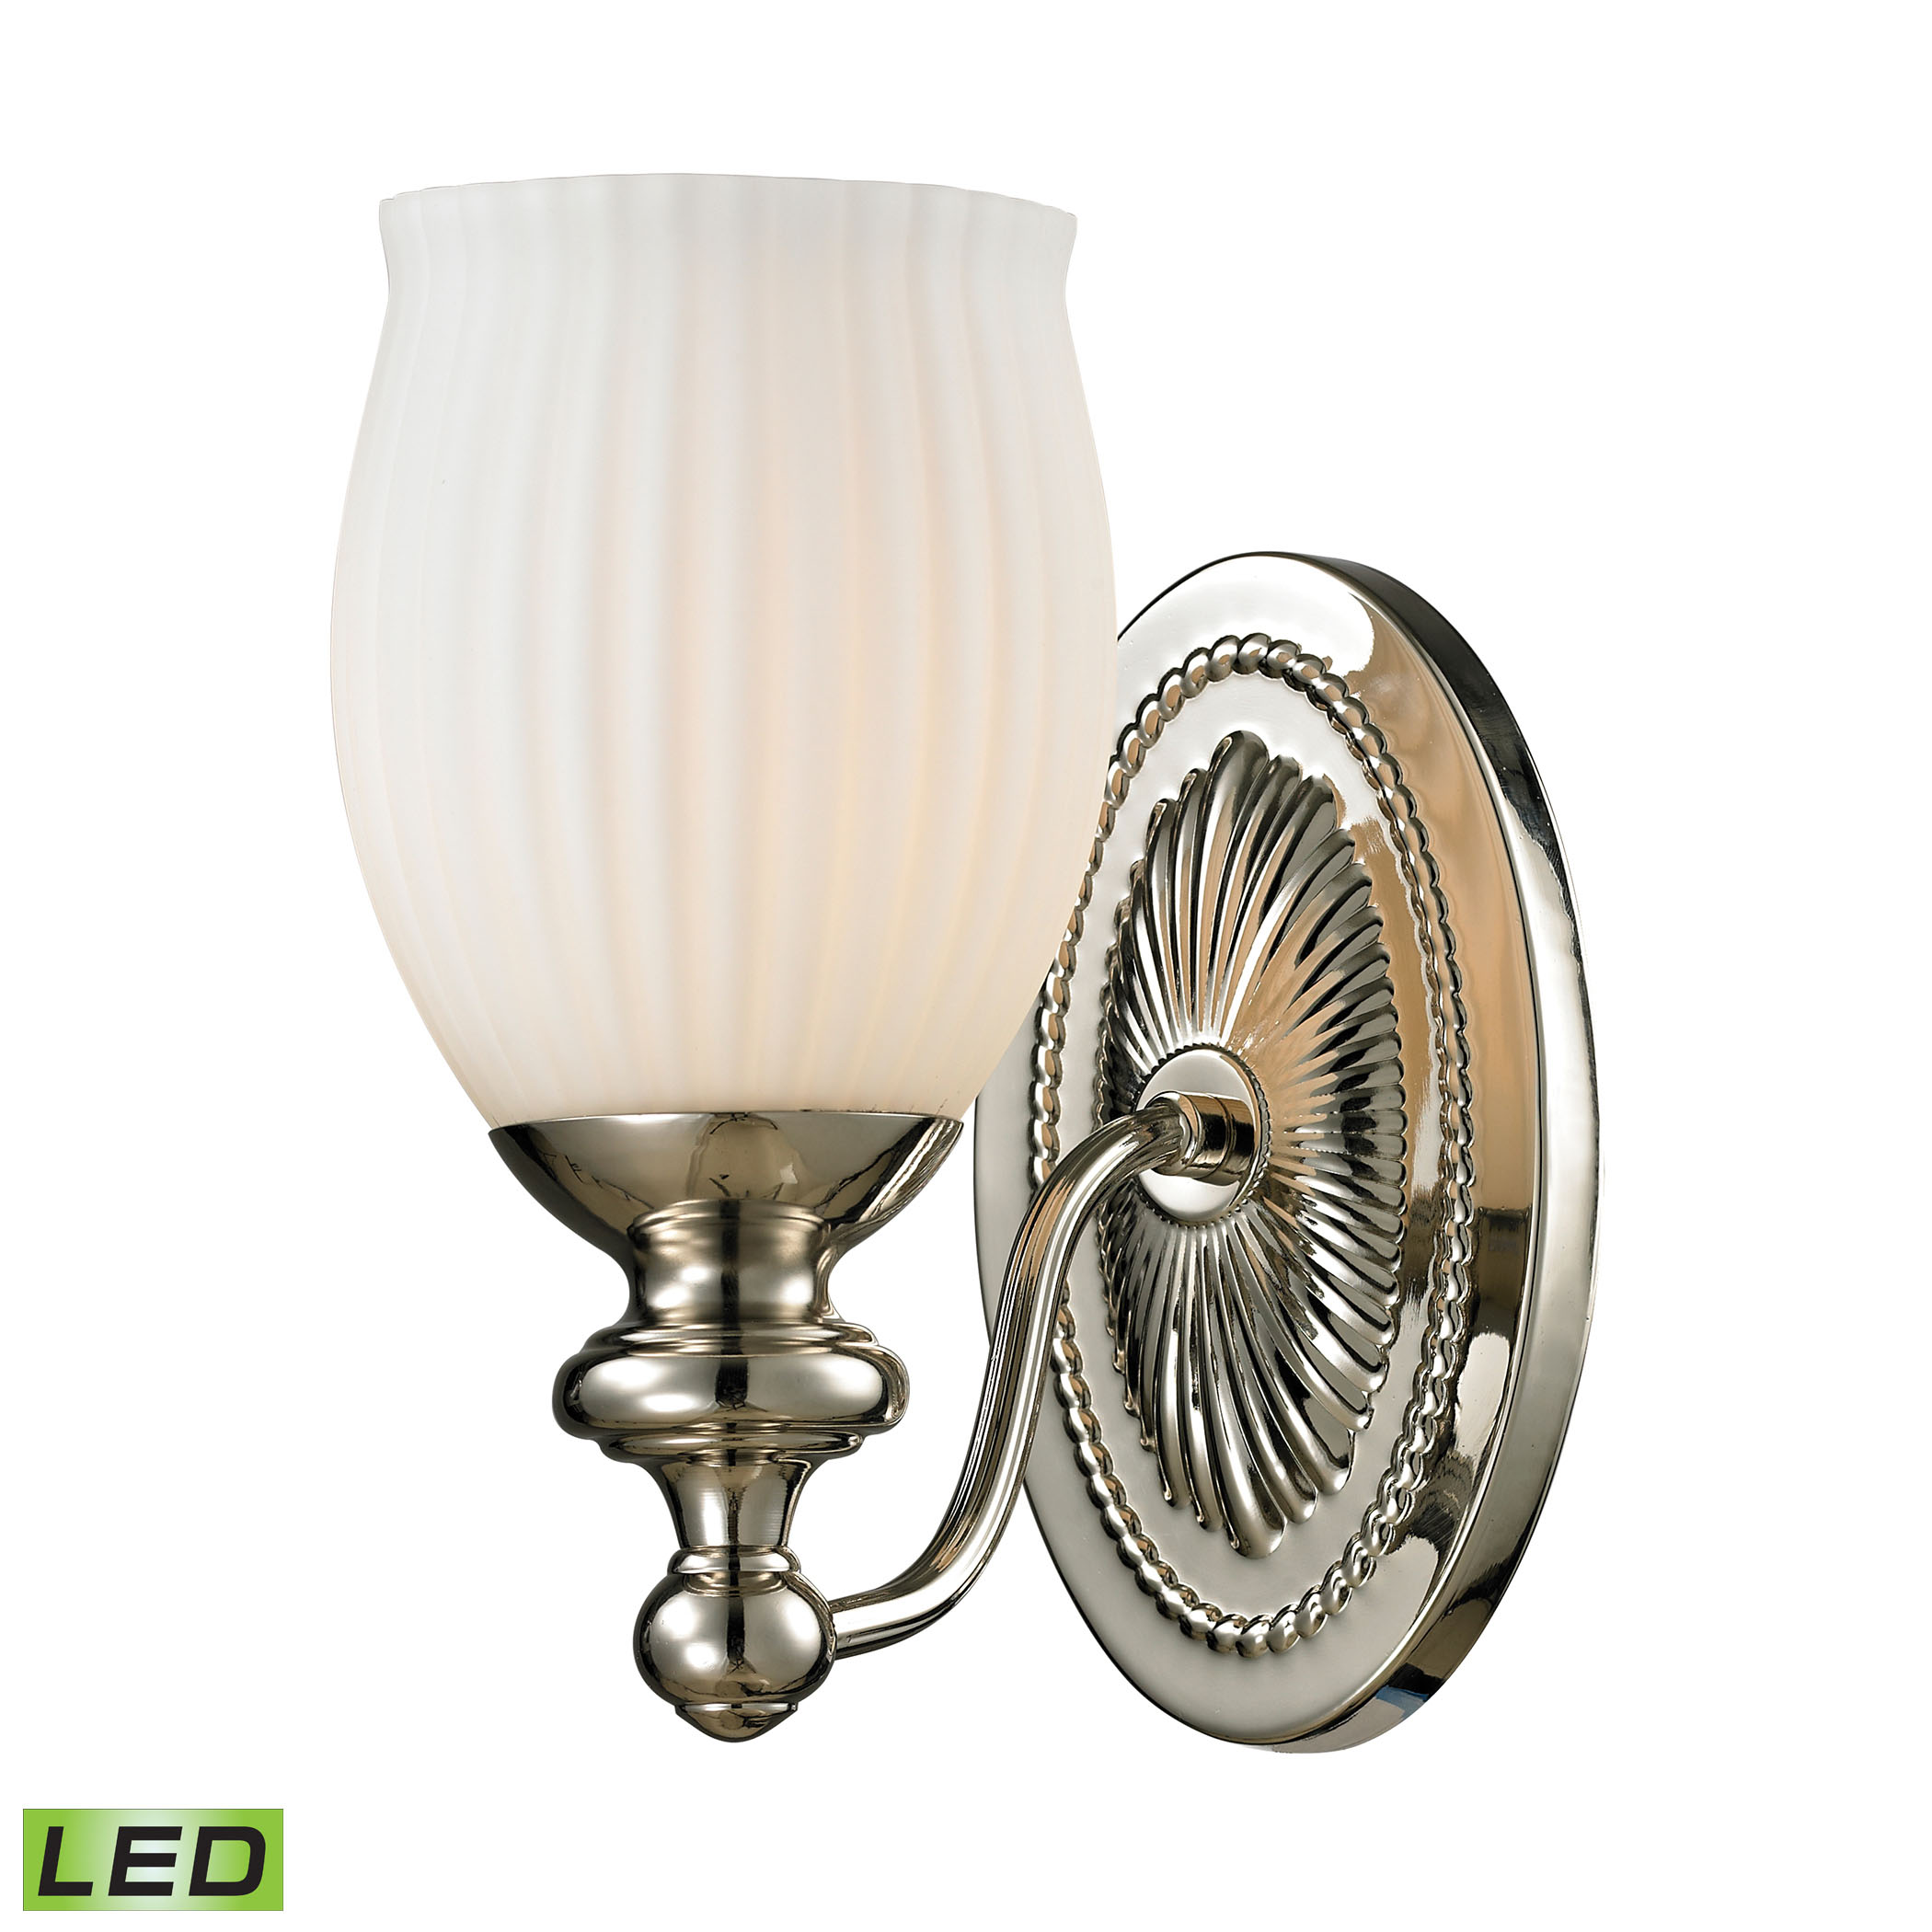 Park Ridge Collection 1 Light Bath in Polished Nickel - LED Offering Up To 800 Lumens (60 Watt Equivalent)